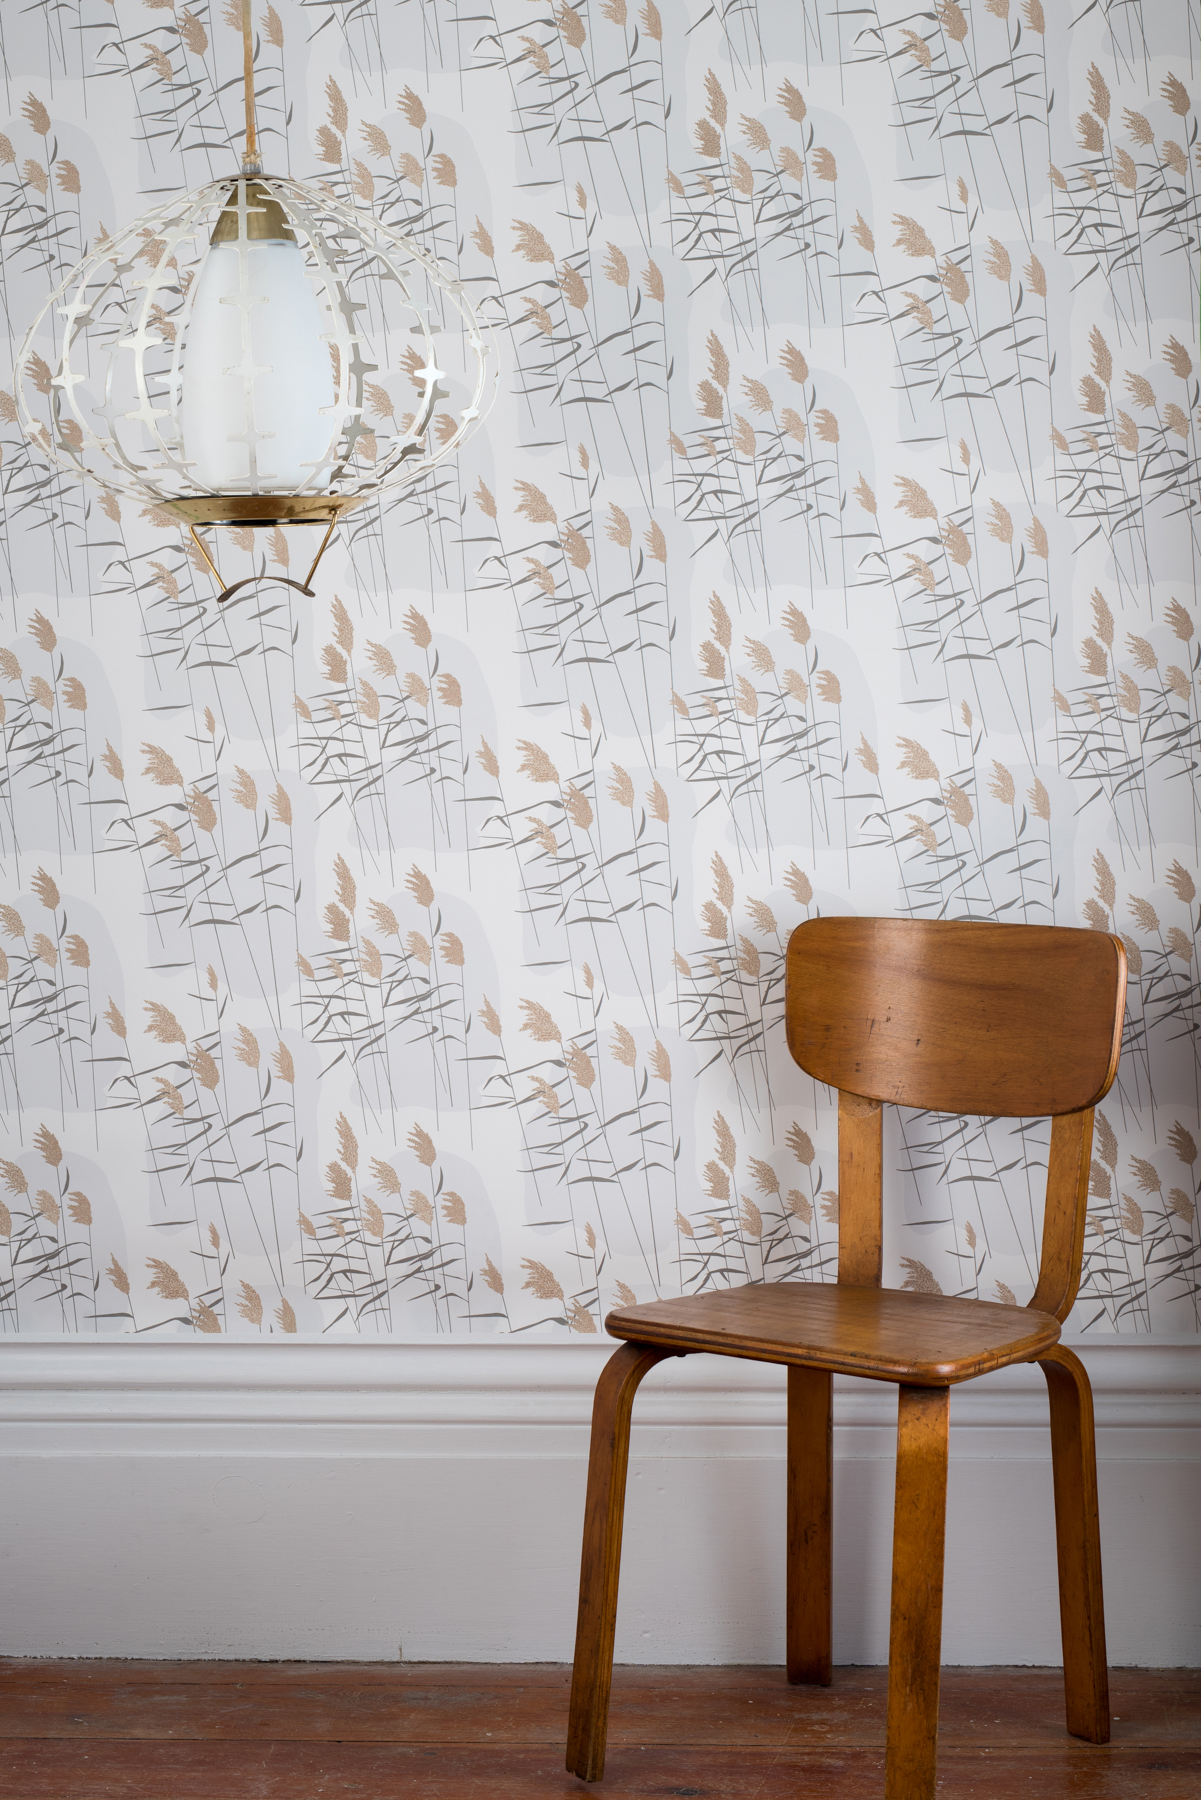 Kate Golding Grasses (Dawn) wallpaper // Modern wallcoverings and interior decor.